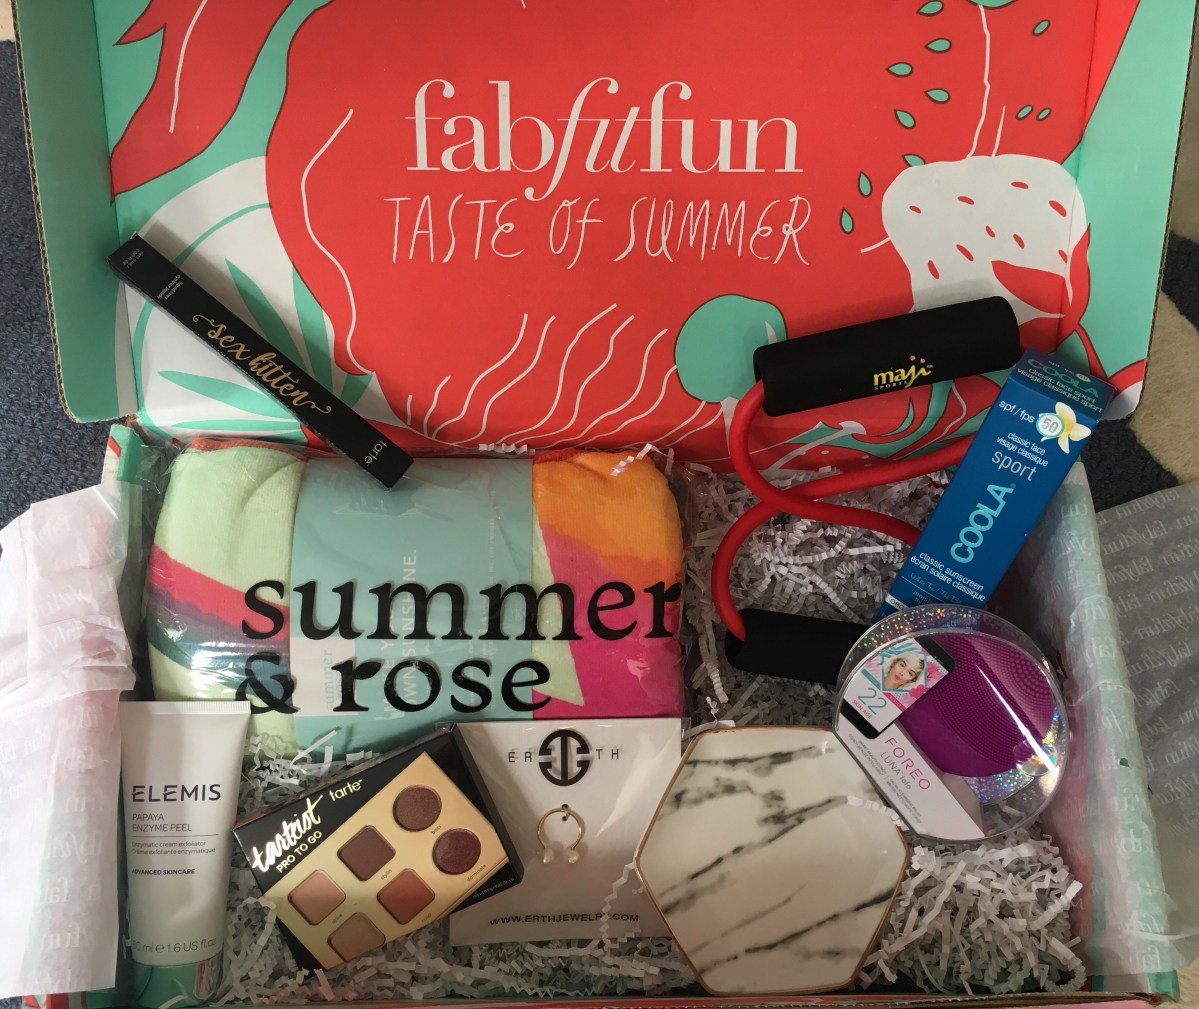 FabFitFun Summer Box Review + $10 Coupon